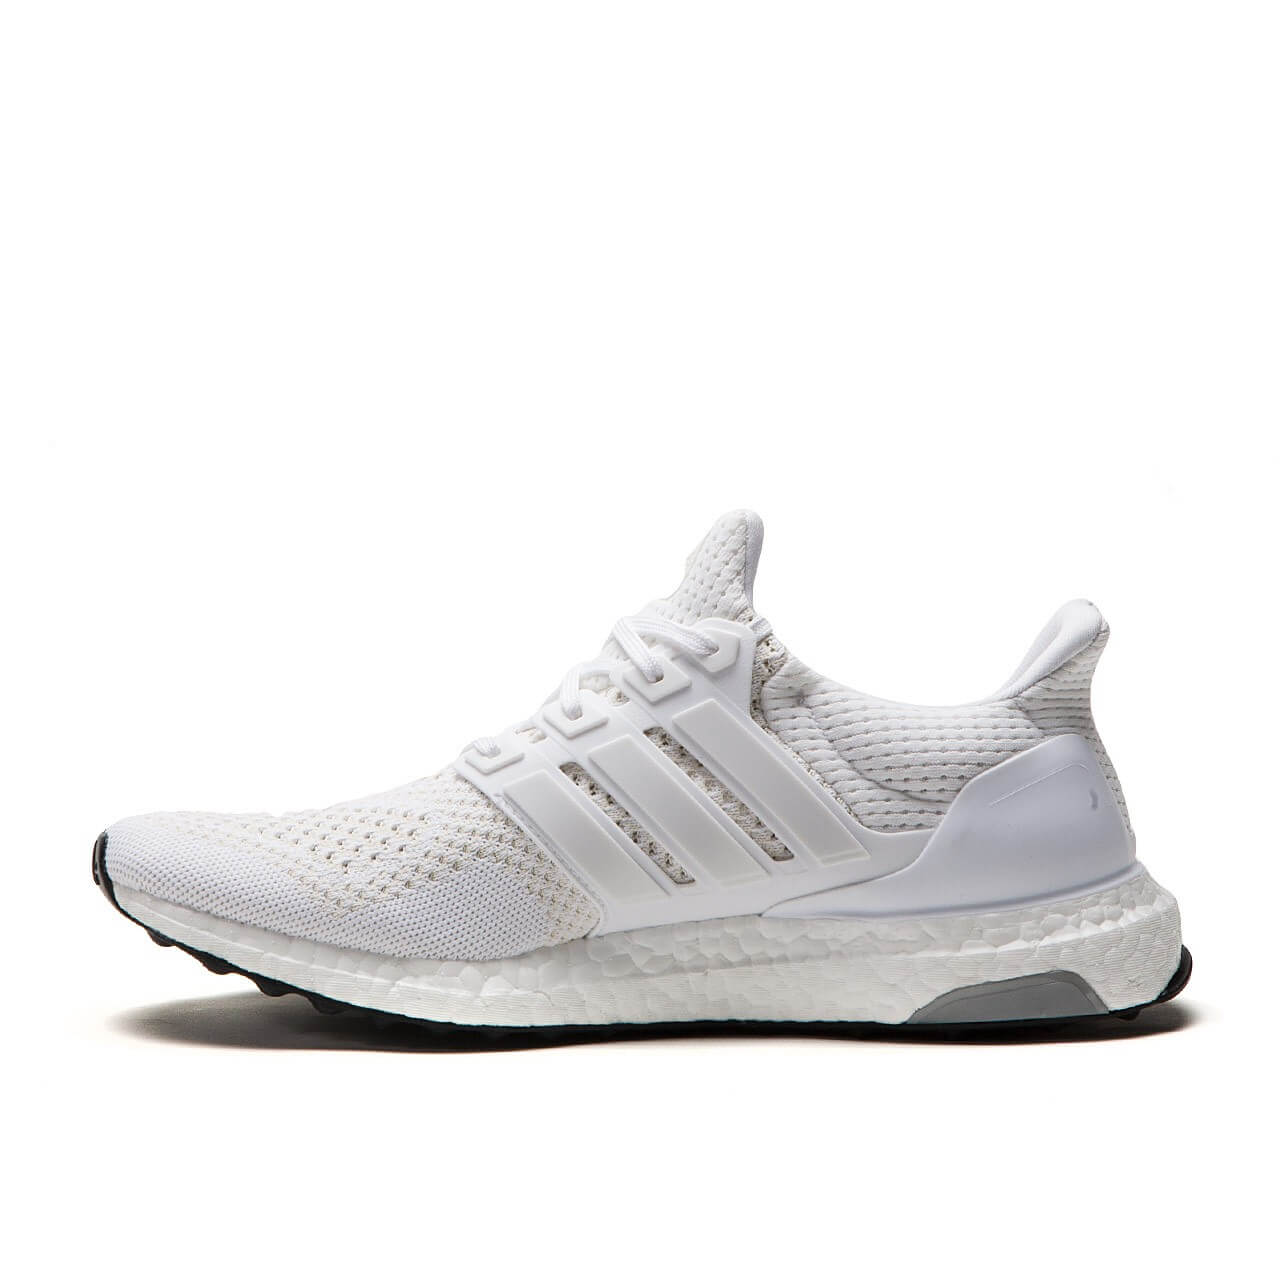 d844996e04fecb Adidas Boost White   Shop Adidas Shoes For Men · Women ·Kids ...